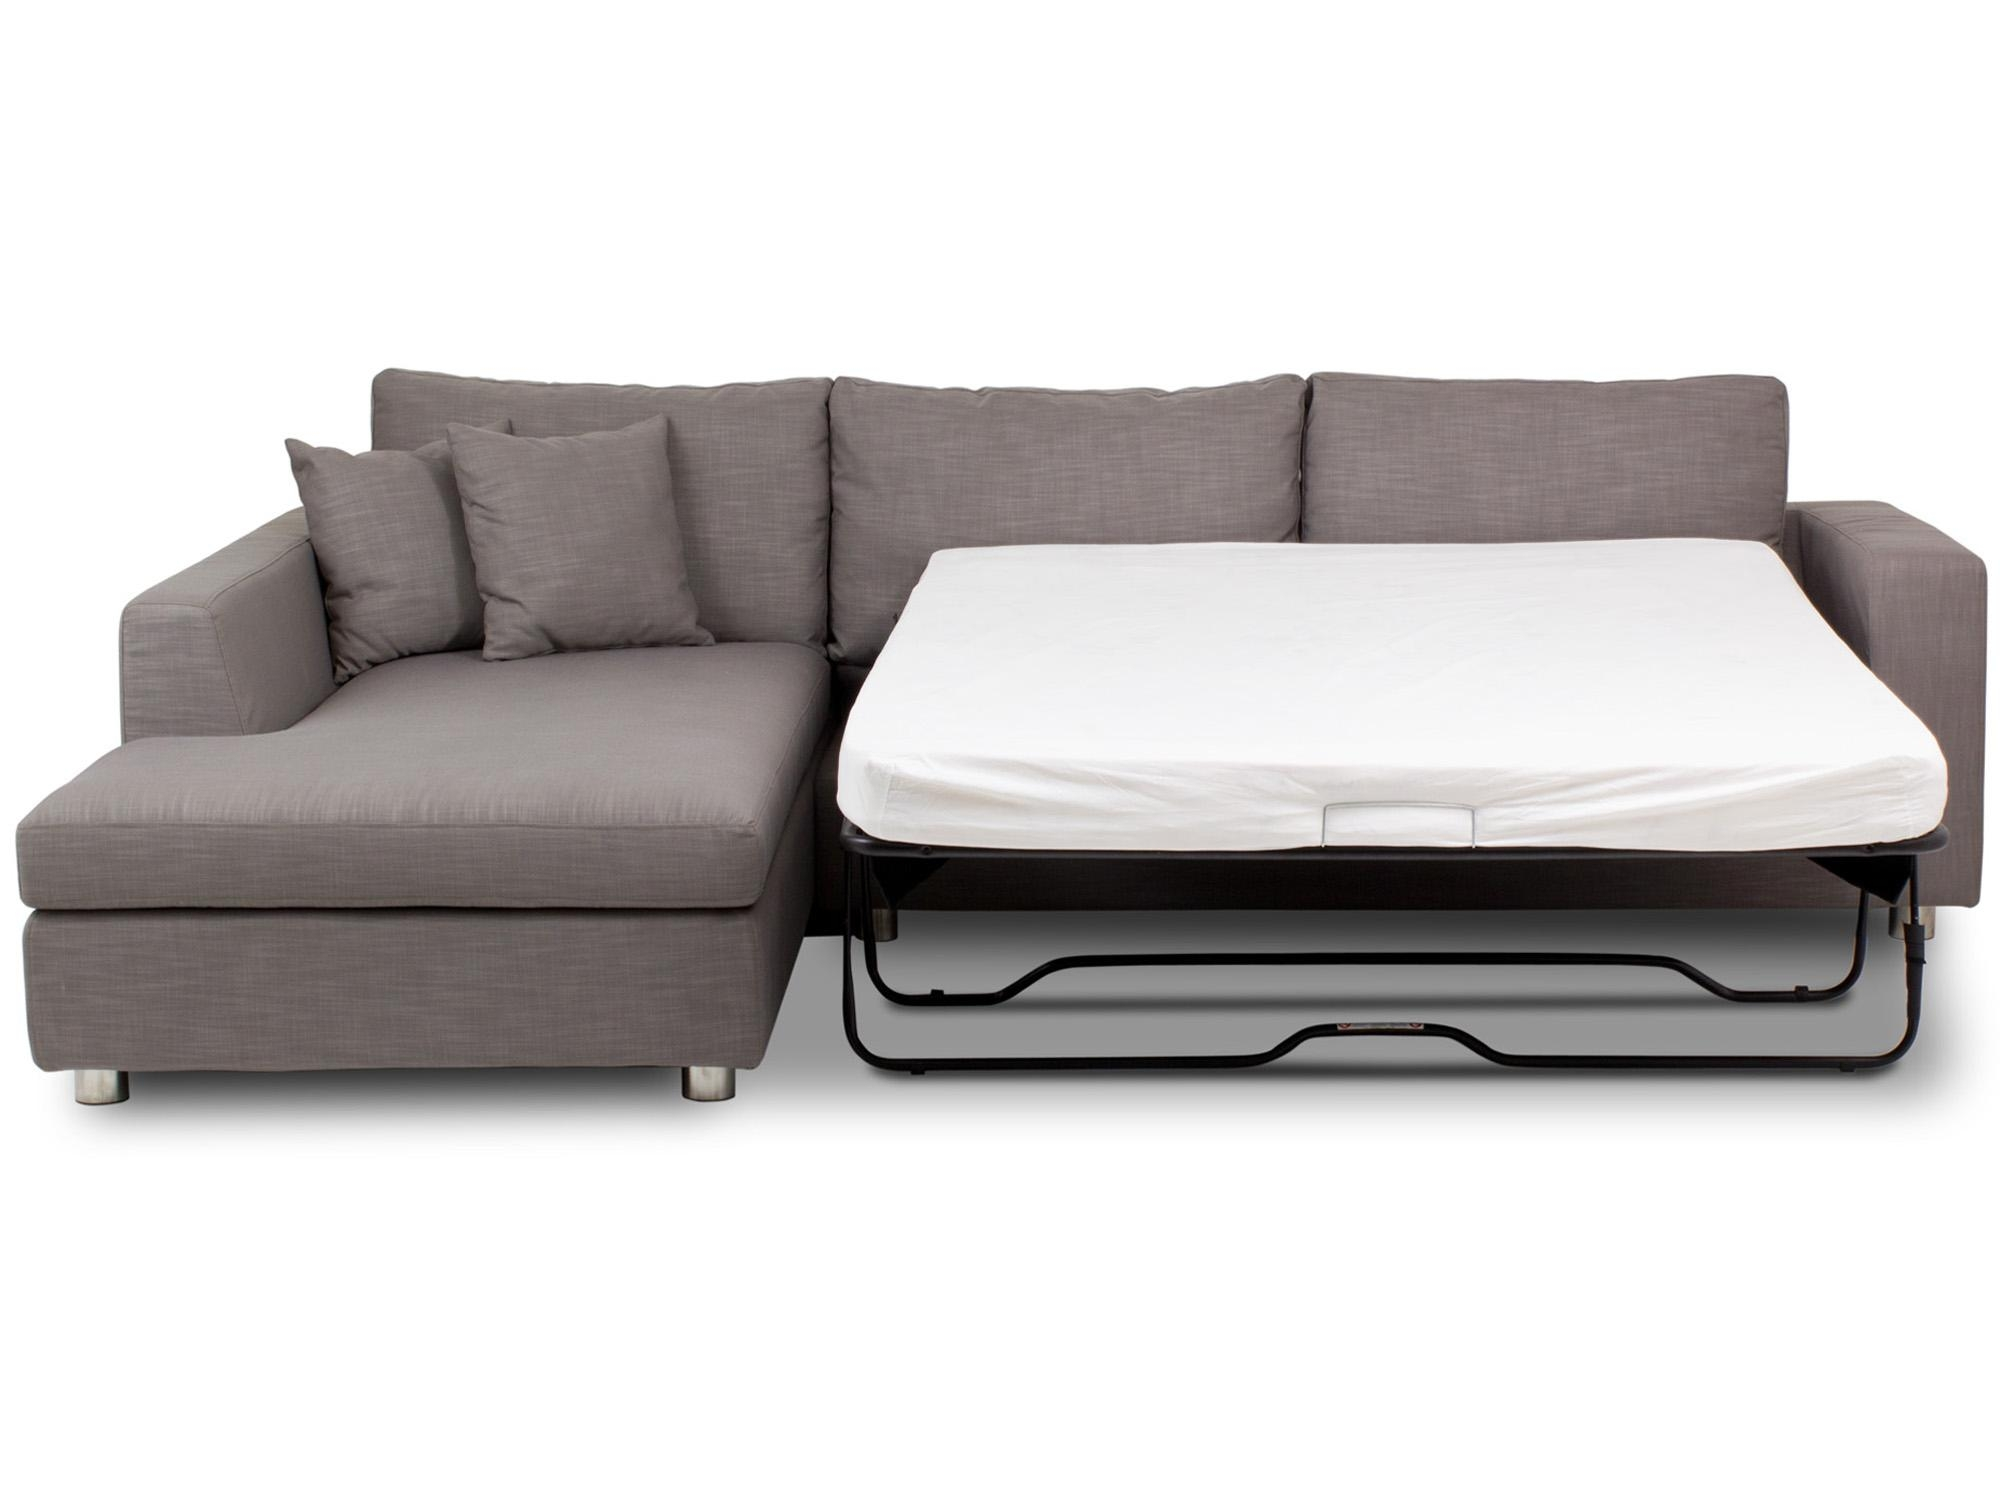 Chaise Sofa Sleeper With Storage | Tehranmix Decoration Pertaining To Sofa Beds With Storage Chaise (View 9 of 20)